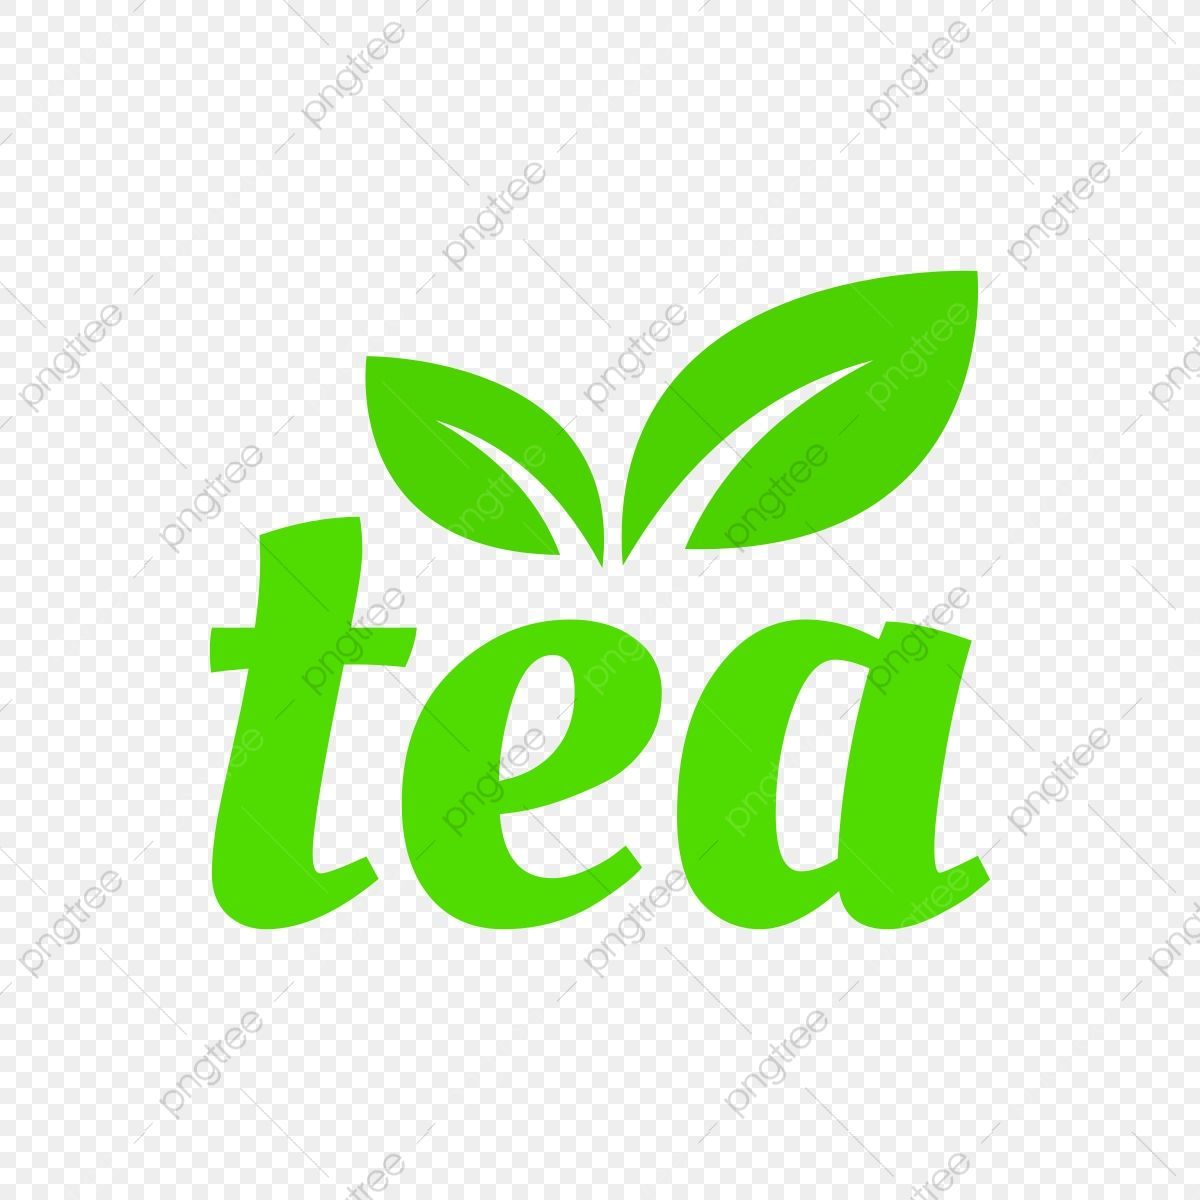 Tea Font Art Word Art With Tea Leaves Word Clipart Font Icons Word Icons Png And Vector With Transparent Background For Free Download Font Art Word Art Art Icon